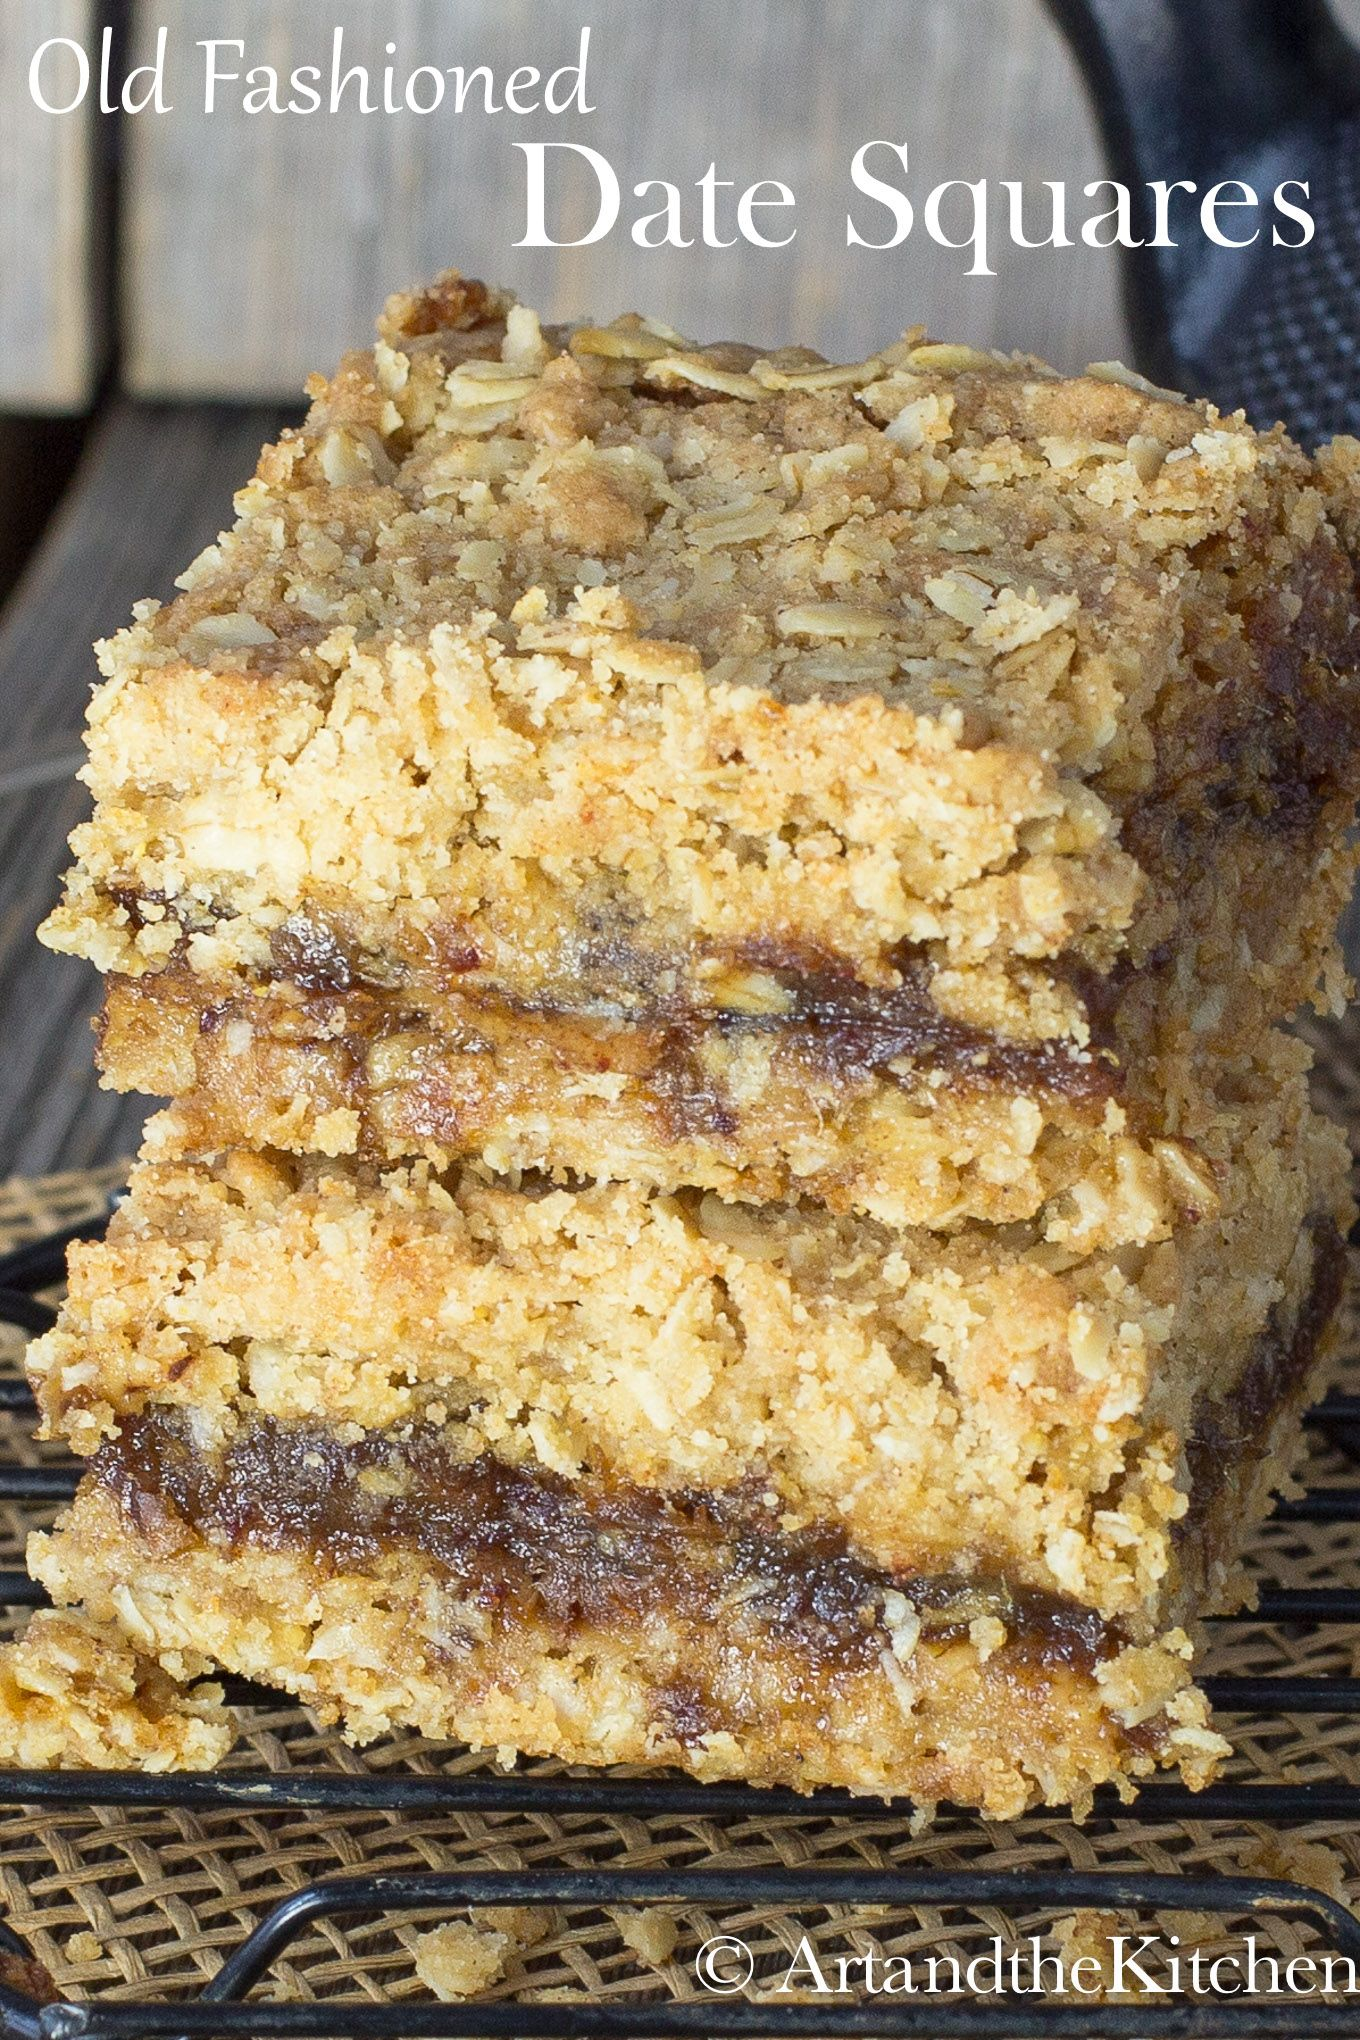 Date Squares | Art and the Kitchen